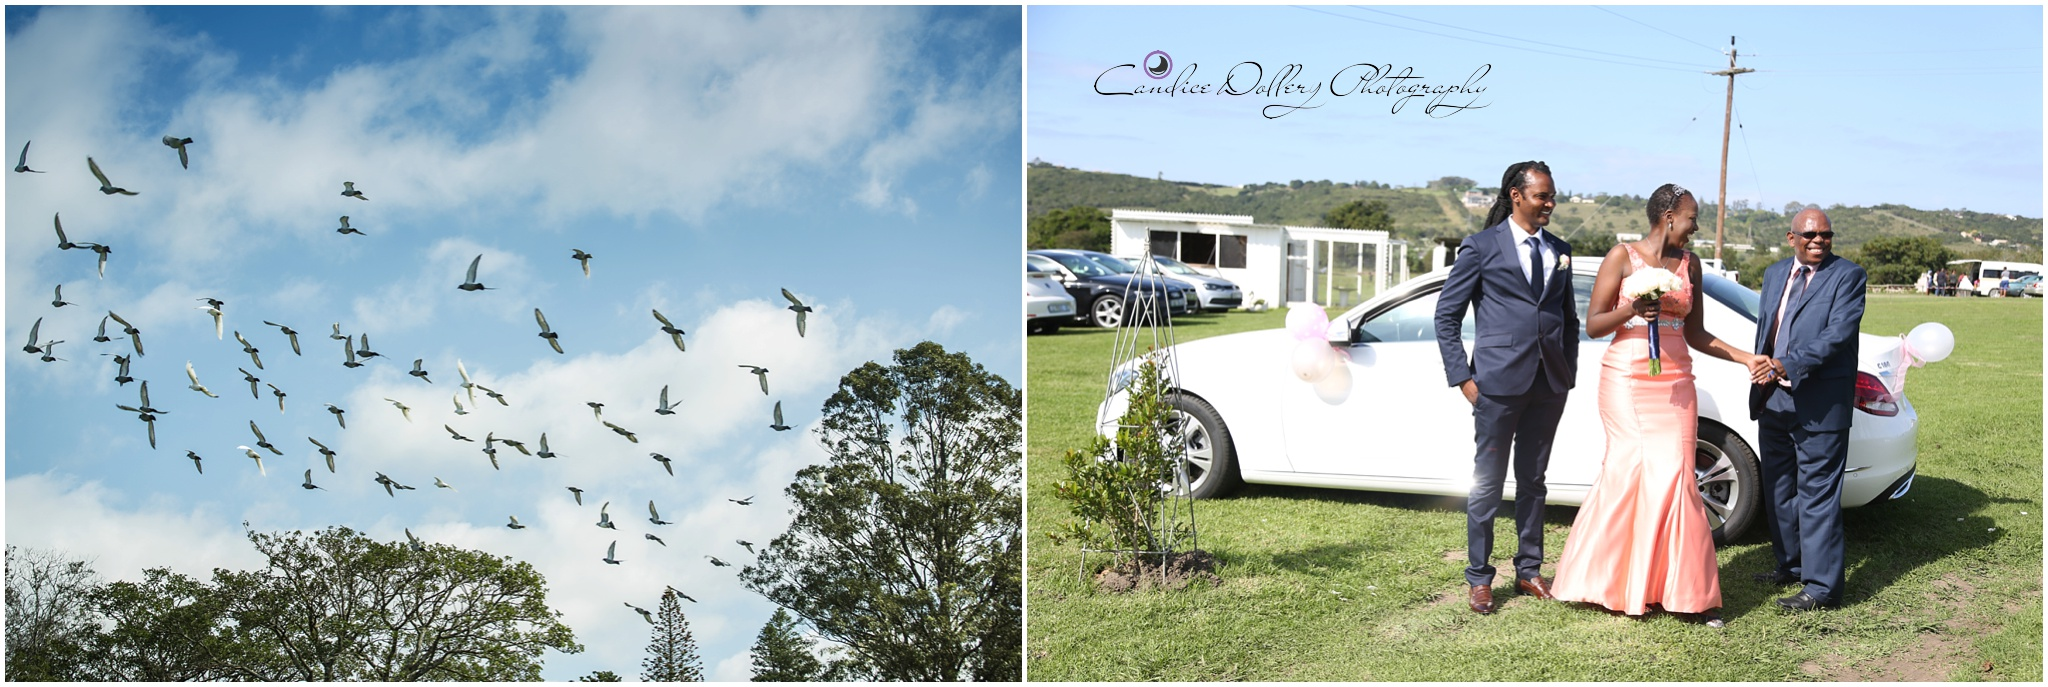 Wedding Gonubie Manor Thola & Phili-Candice Dollery Photograhy_4194